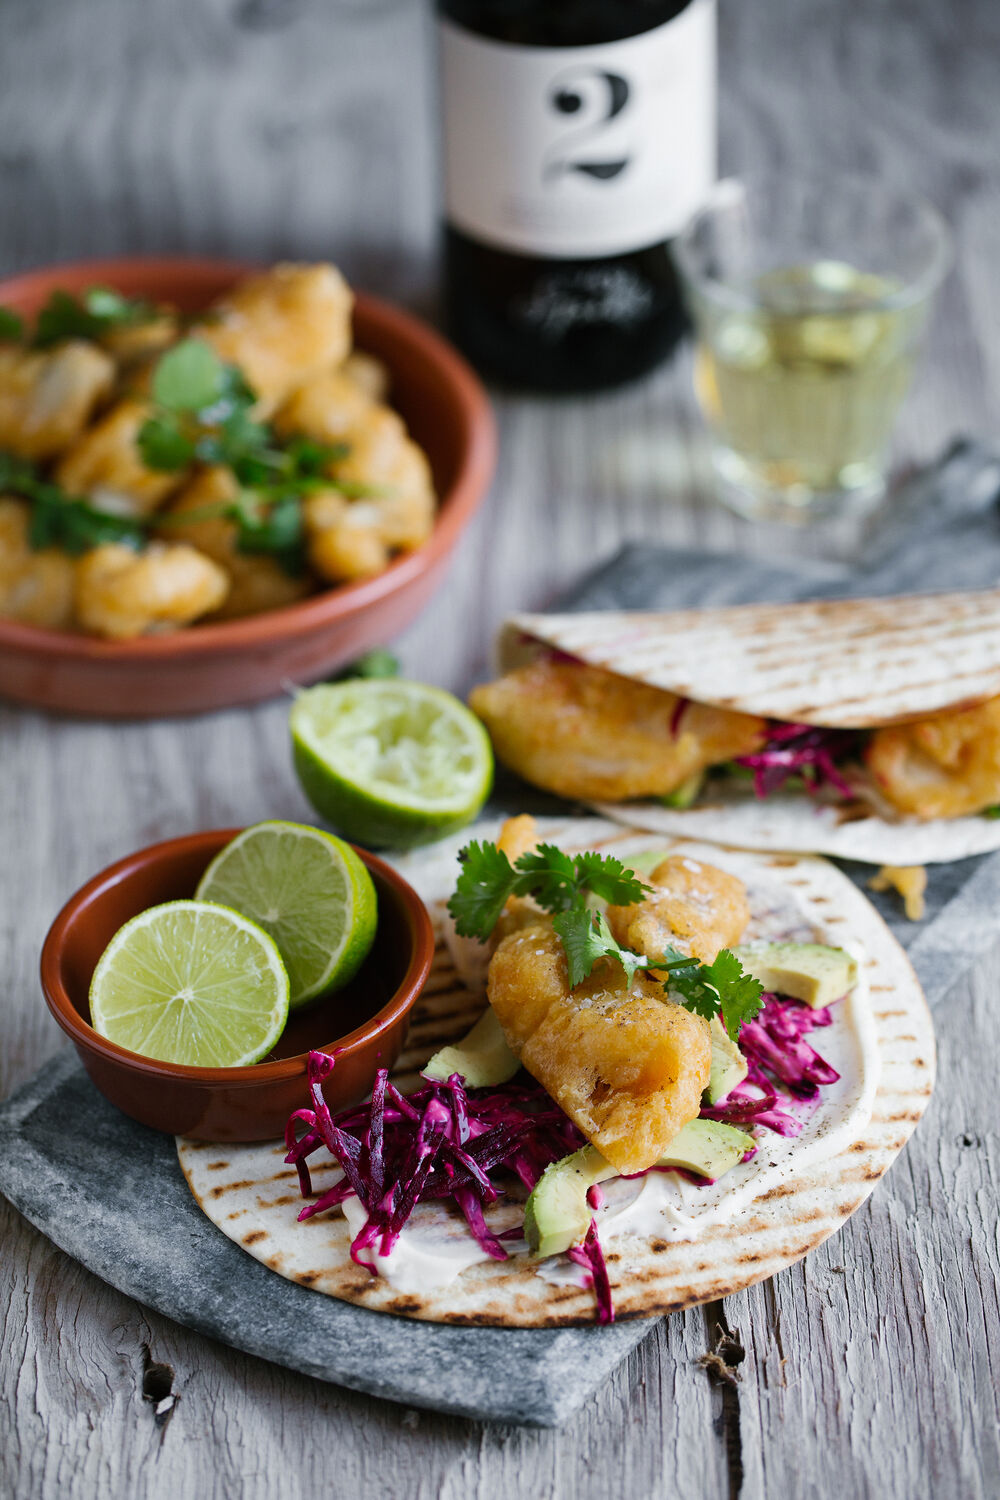 Fish tacos with beetroot slaw, coriander and sour cream mayo